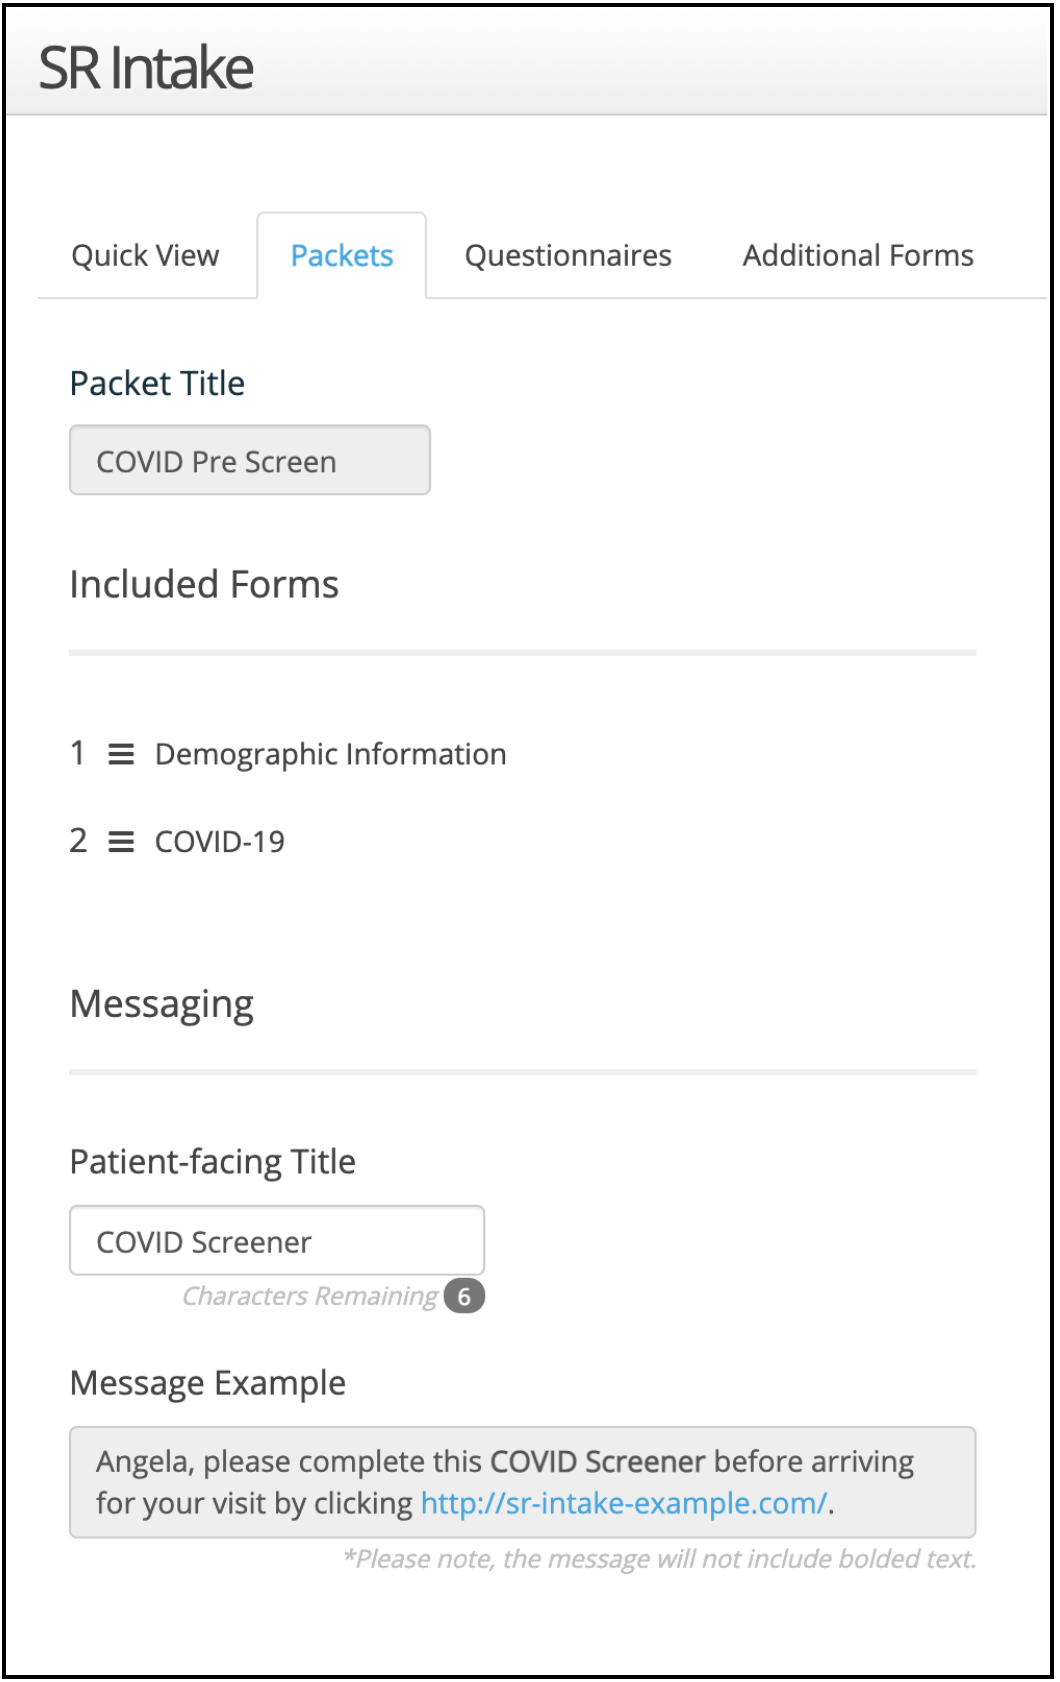 Screenshot of patient-facing title field during intake packet creation/edit